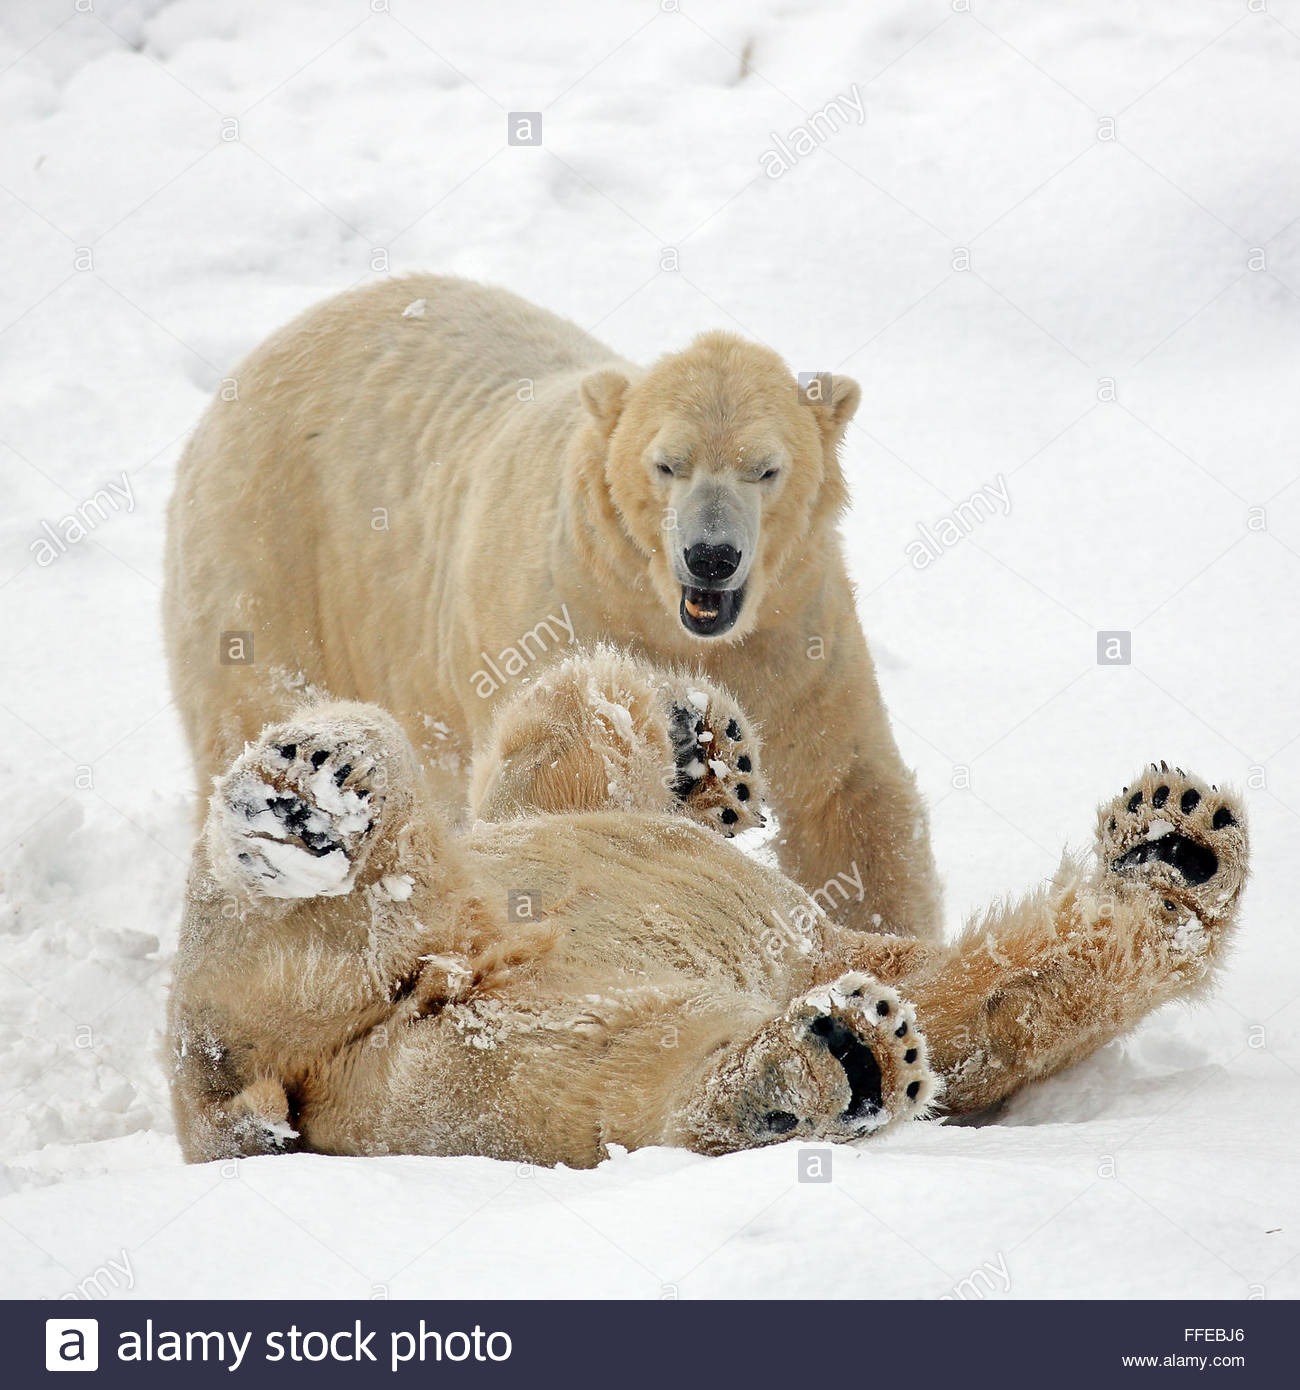 Two Polar bears fighting on the snow covered ground - Stock Image